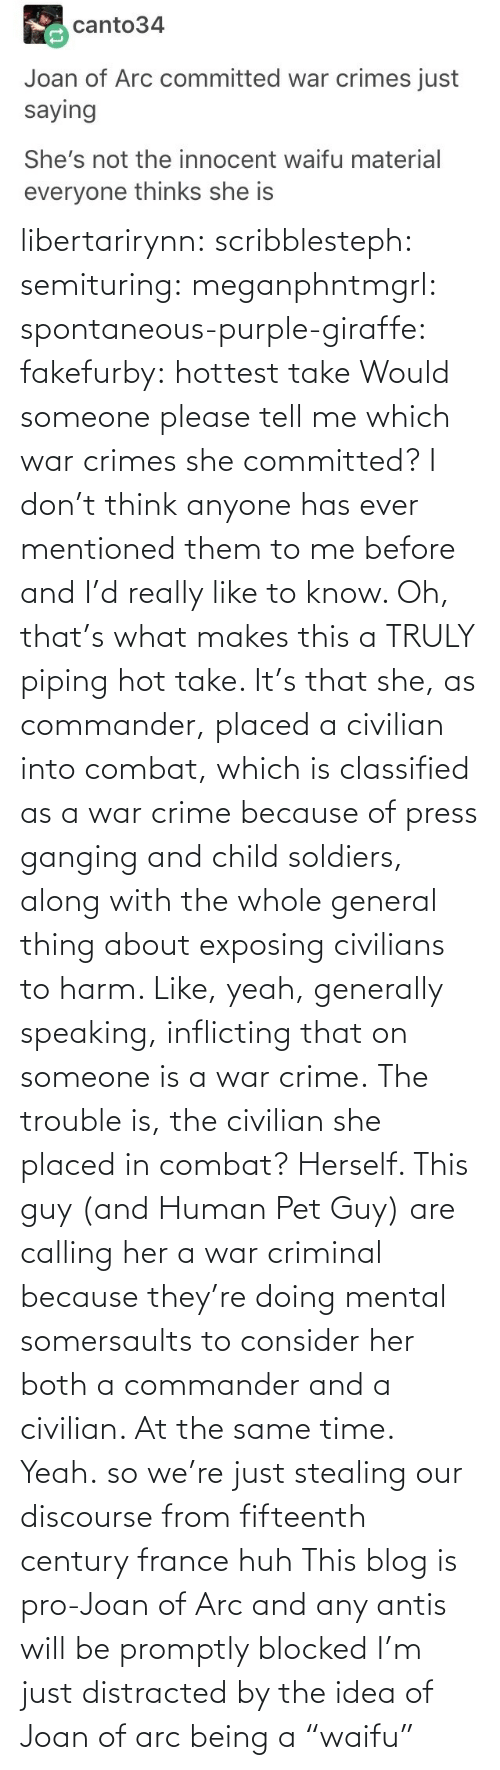 "France: libertarirynn: scribblesteph:  semituring:  meganphntmgrl:  spontaneous-purple-giraffe:   fakefurby: hottest take  Would someone please tell me which war crimes she committed? I don't think anyone has ever mentioned them to me before and I'd really like to know.    Oh, that's what makes this a TRULY piping hot take. It's that she, as commander, placed a civilian into combat, which is classified as a war crime because of press ganging and child soldiers, along with the whole general thing about exposing civilians to harm. Like, yeah, generally speaking, inflicting that on someone is a war crime. The trouble is, the civilian she placed in combat? Herself.  This guy (and Human Pet Guy) are calling her a war criminal because they're doing mental somersaults to consider her both a commander and a civilian. At the same time.  Yeah.  so we're just stealing our discourse from fifteenth century france huh   This blog is pro-Joan of Arc and any antis will be promptly blocked   I'm just distracted by the idea of Joan of arc being a ""waifu"""